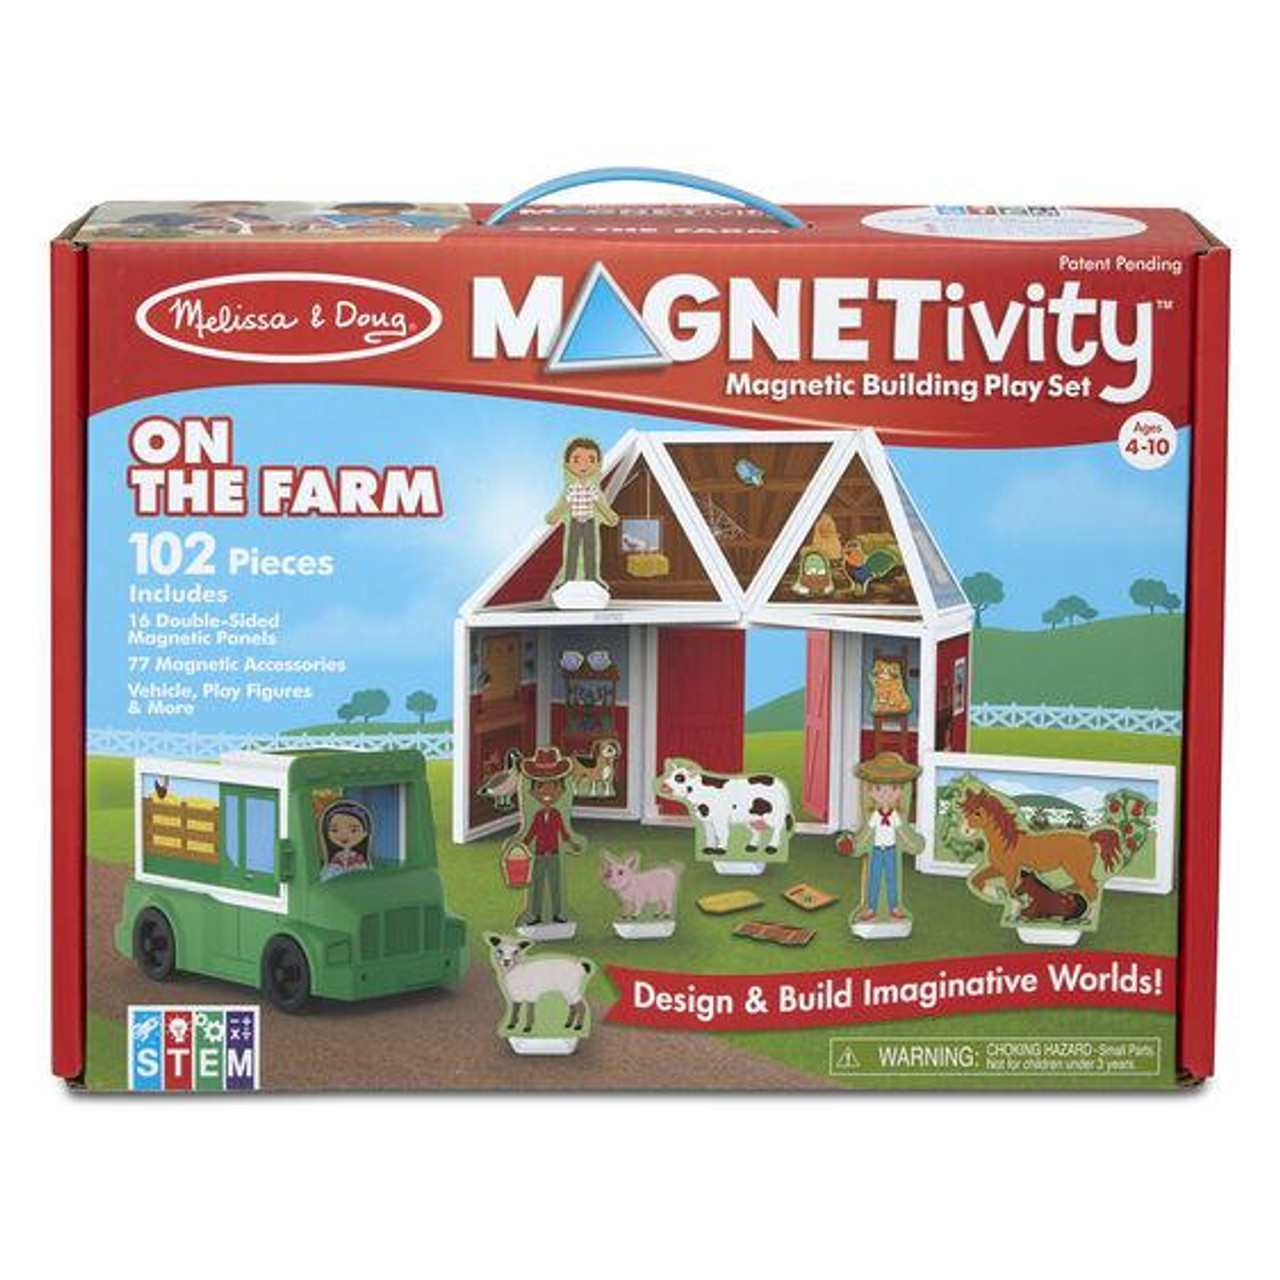 melissa doug magnetivity on the farm 30656 gamemasters outdoors gamemasters outdoors